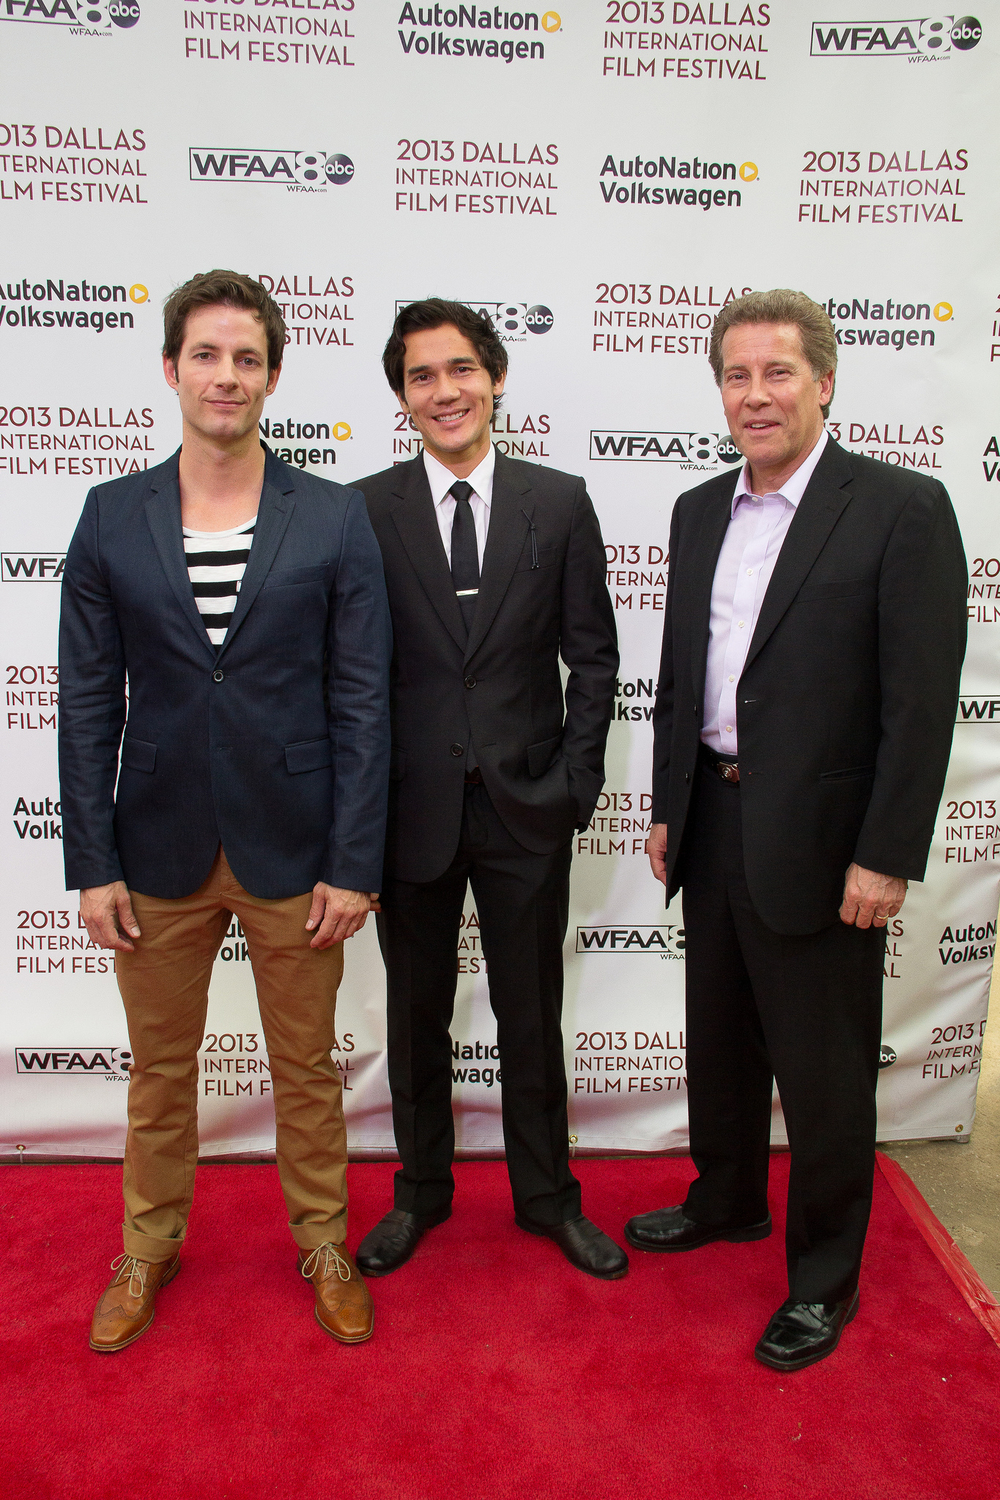 Philipp Karner (Producer/Talent), Scotty Crowe (Producer/Talent) and Keith Buterbaugh (Talent) of DIVING NORMAL on the red carpet at The Dallas International Film Festival 2013 at the Angelika! Photo by Lindsay Jones